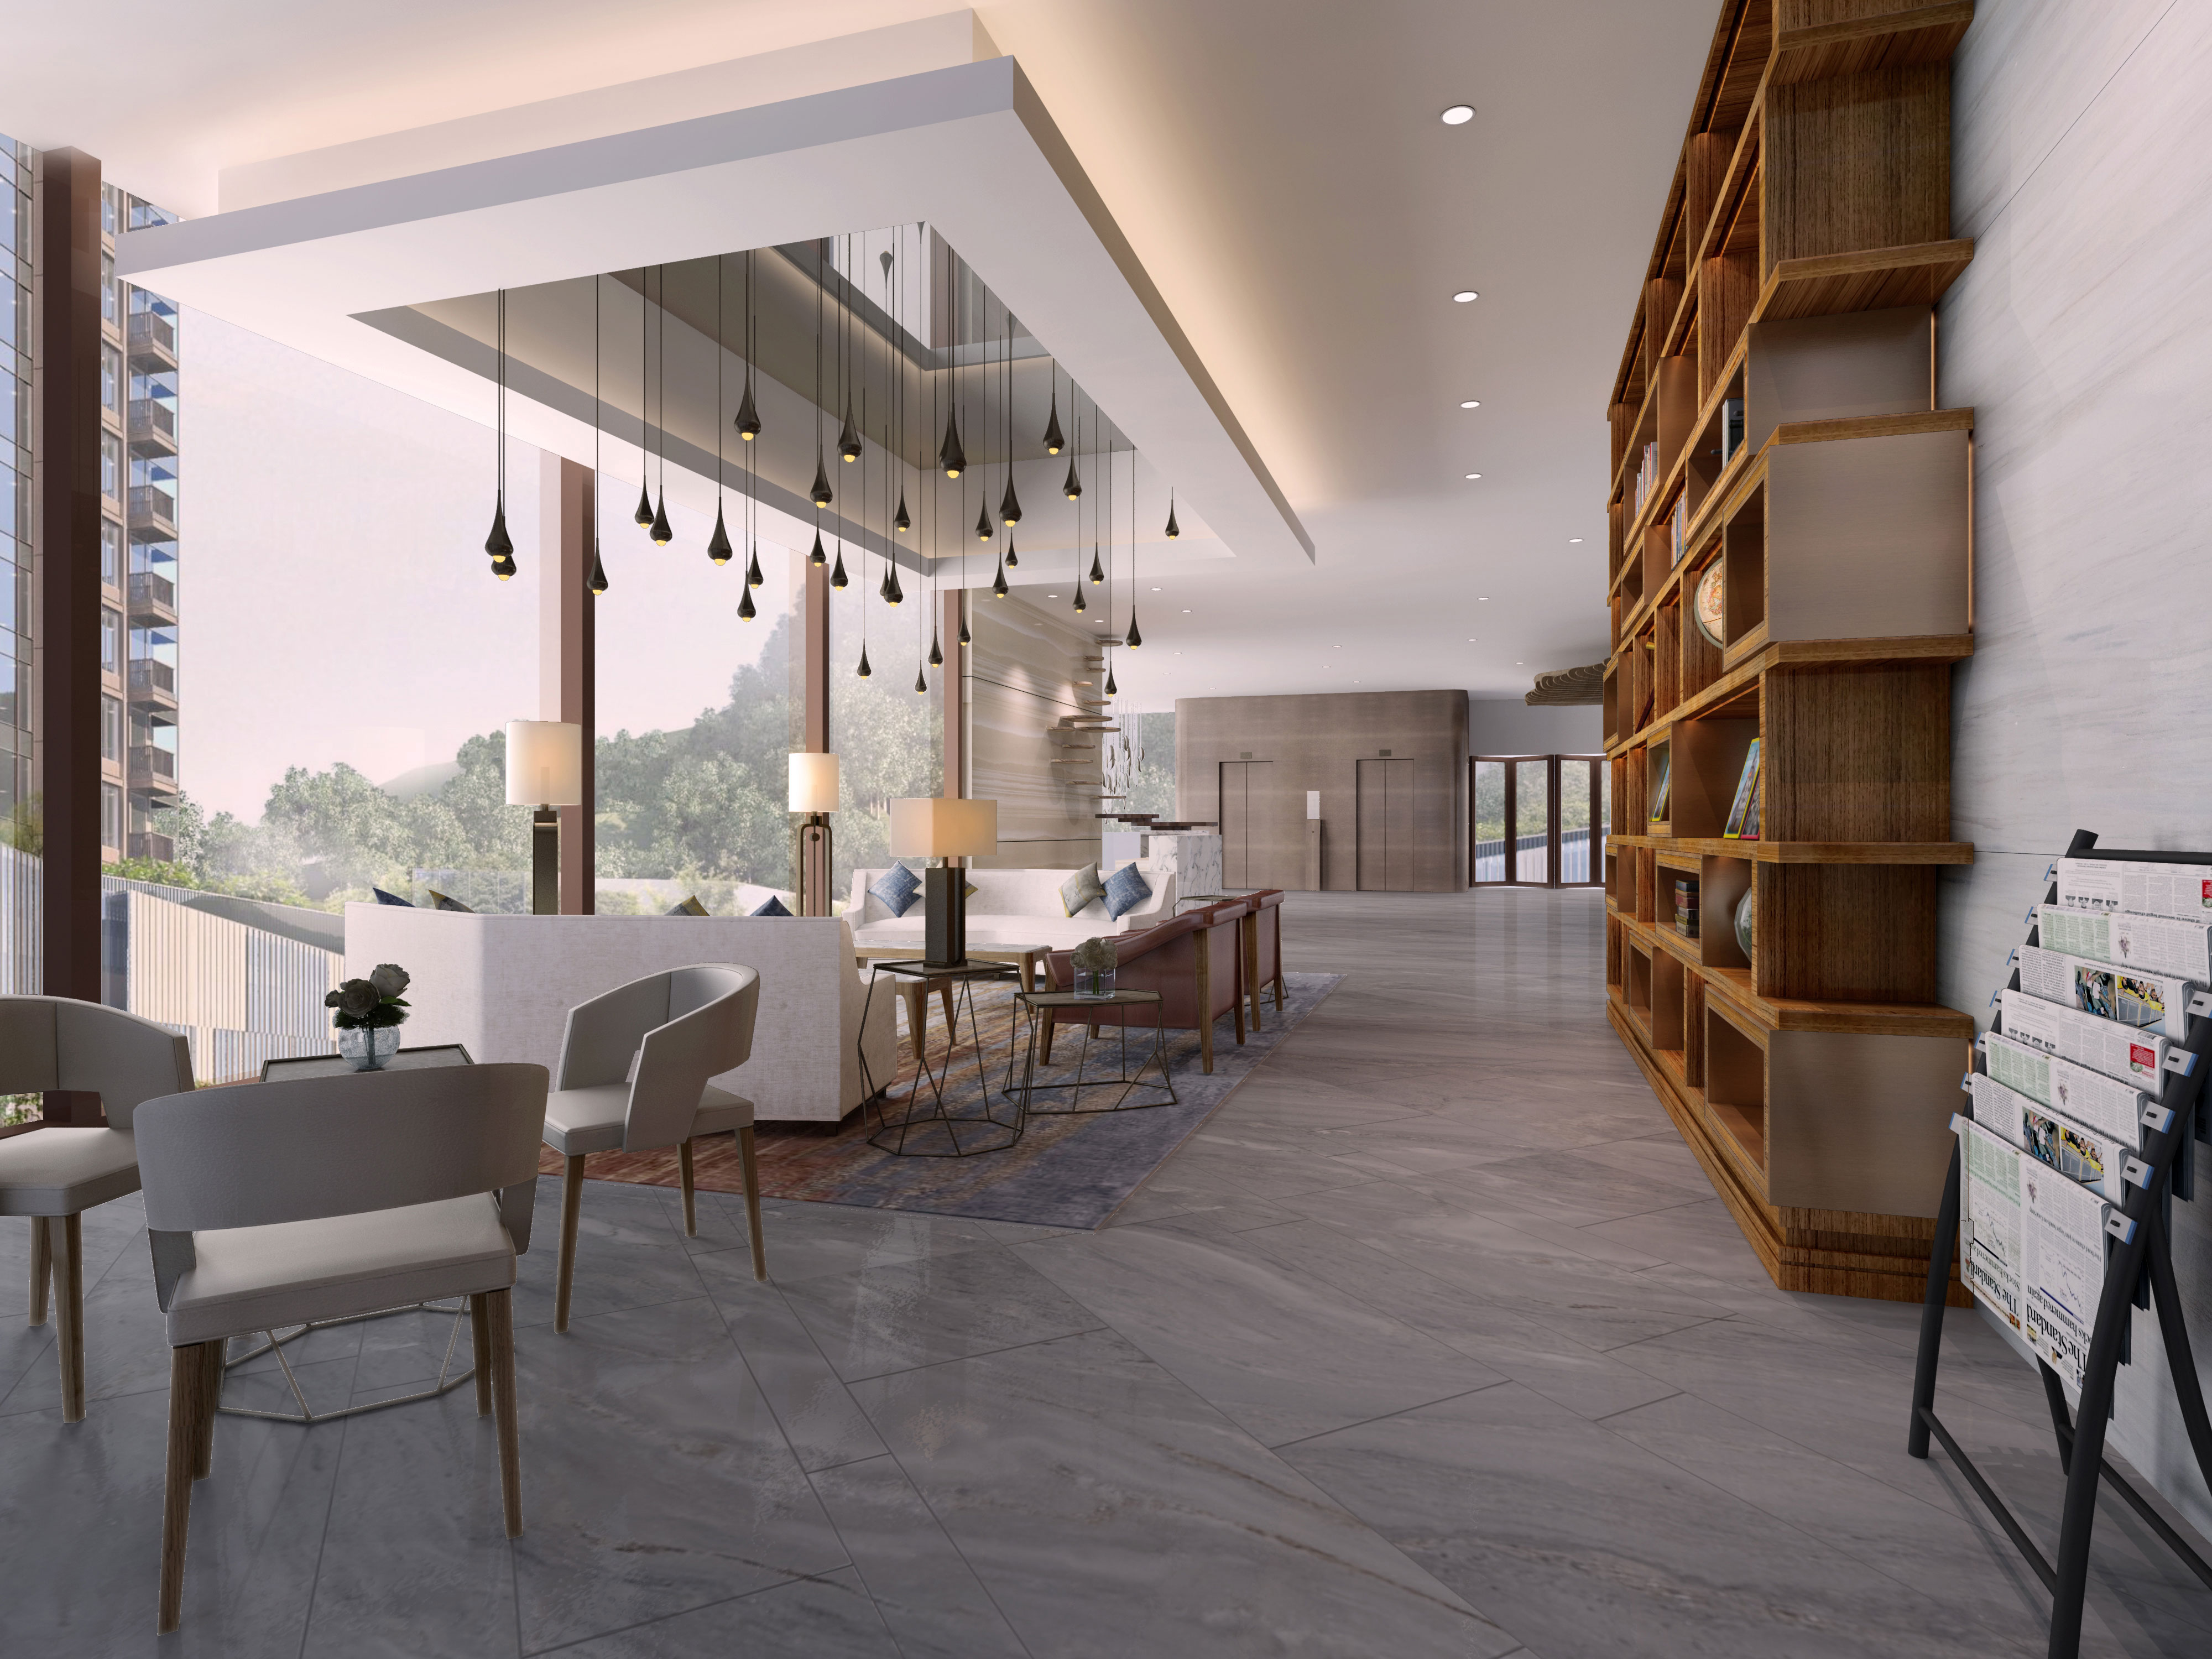 Ho man tin sheung lok street luxury clubhouse the gettys for Residential clubhouse designs